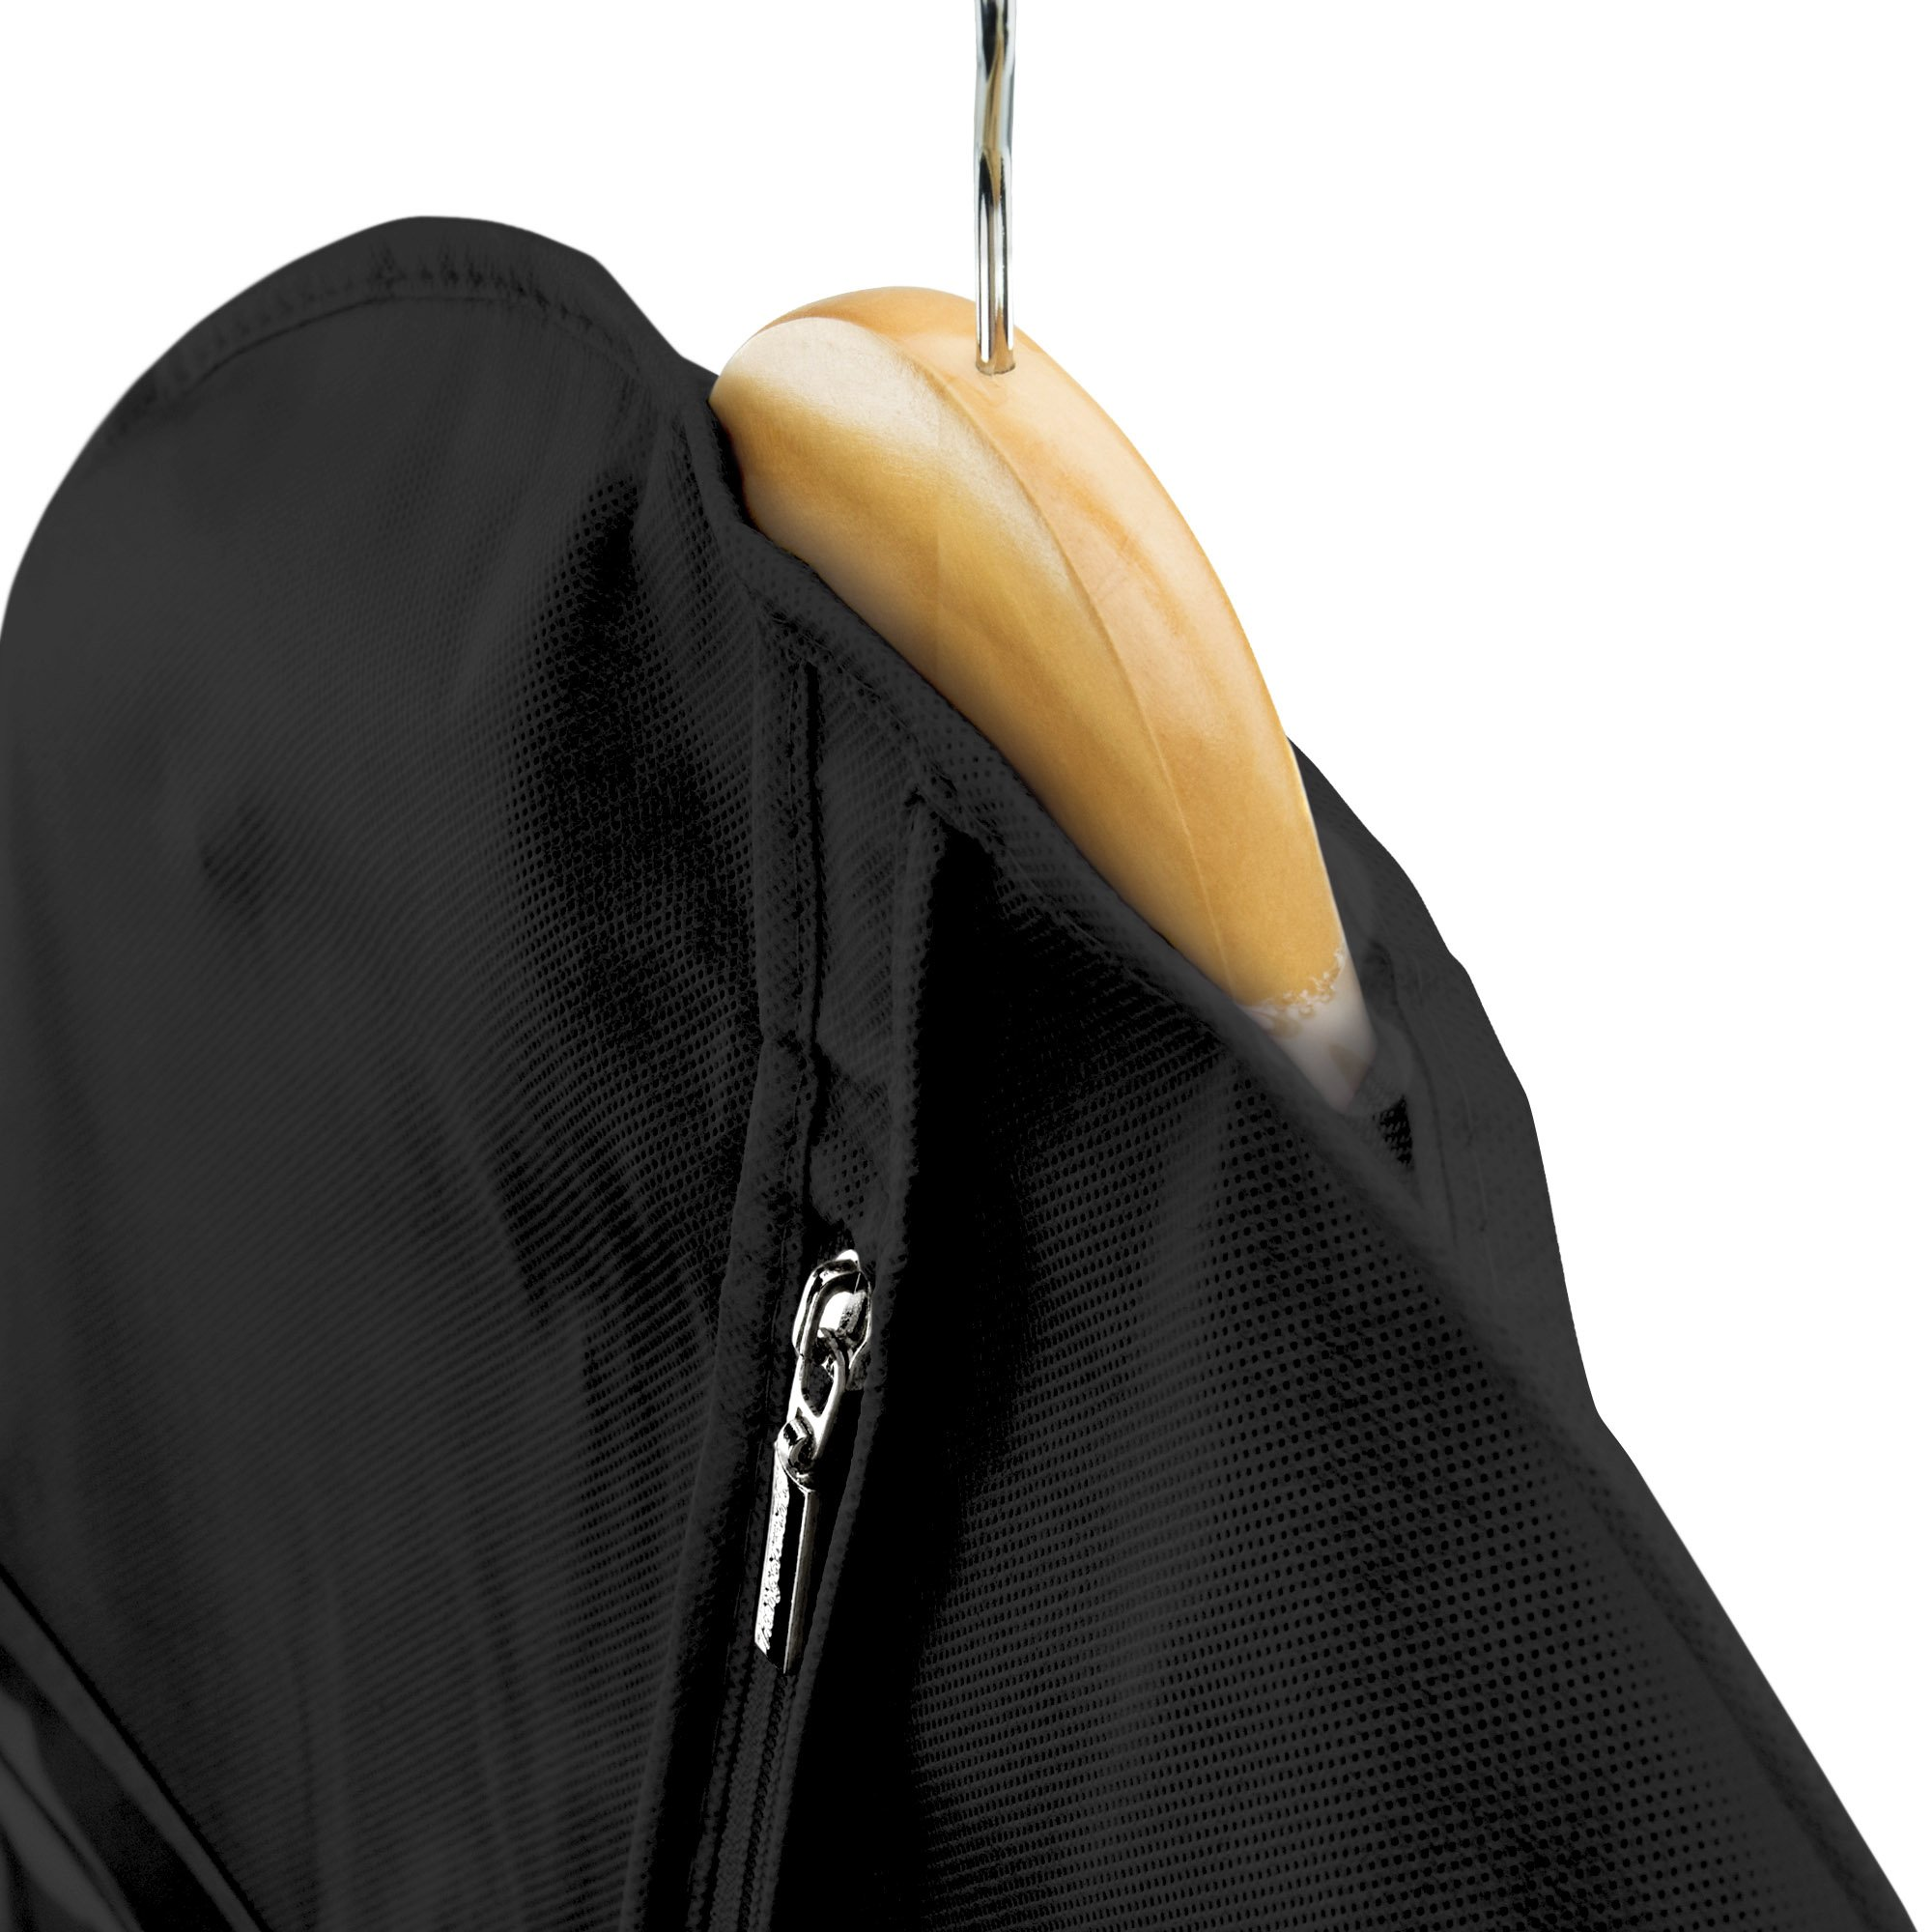 Hangerworld Black Breathable 60 inch Suit Garment Bag - Extra Long cover for Dresses and Gowns, Featuring a Secret Internal Zipped Pocket for safe storage. by HANGERWORLD (Image #3)